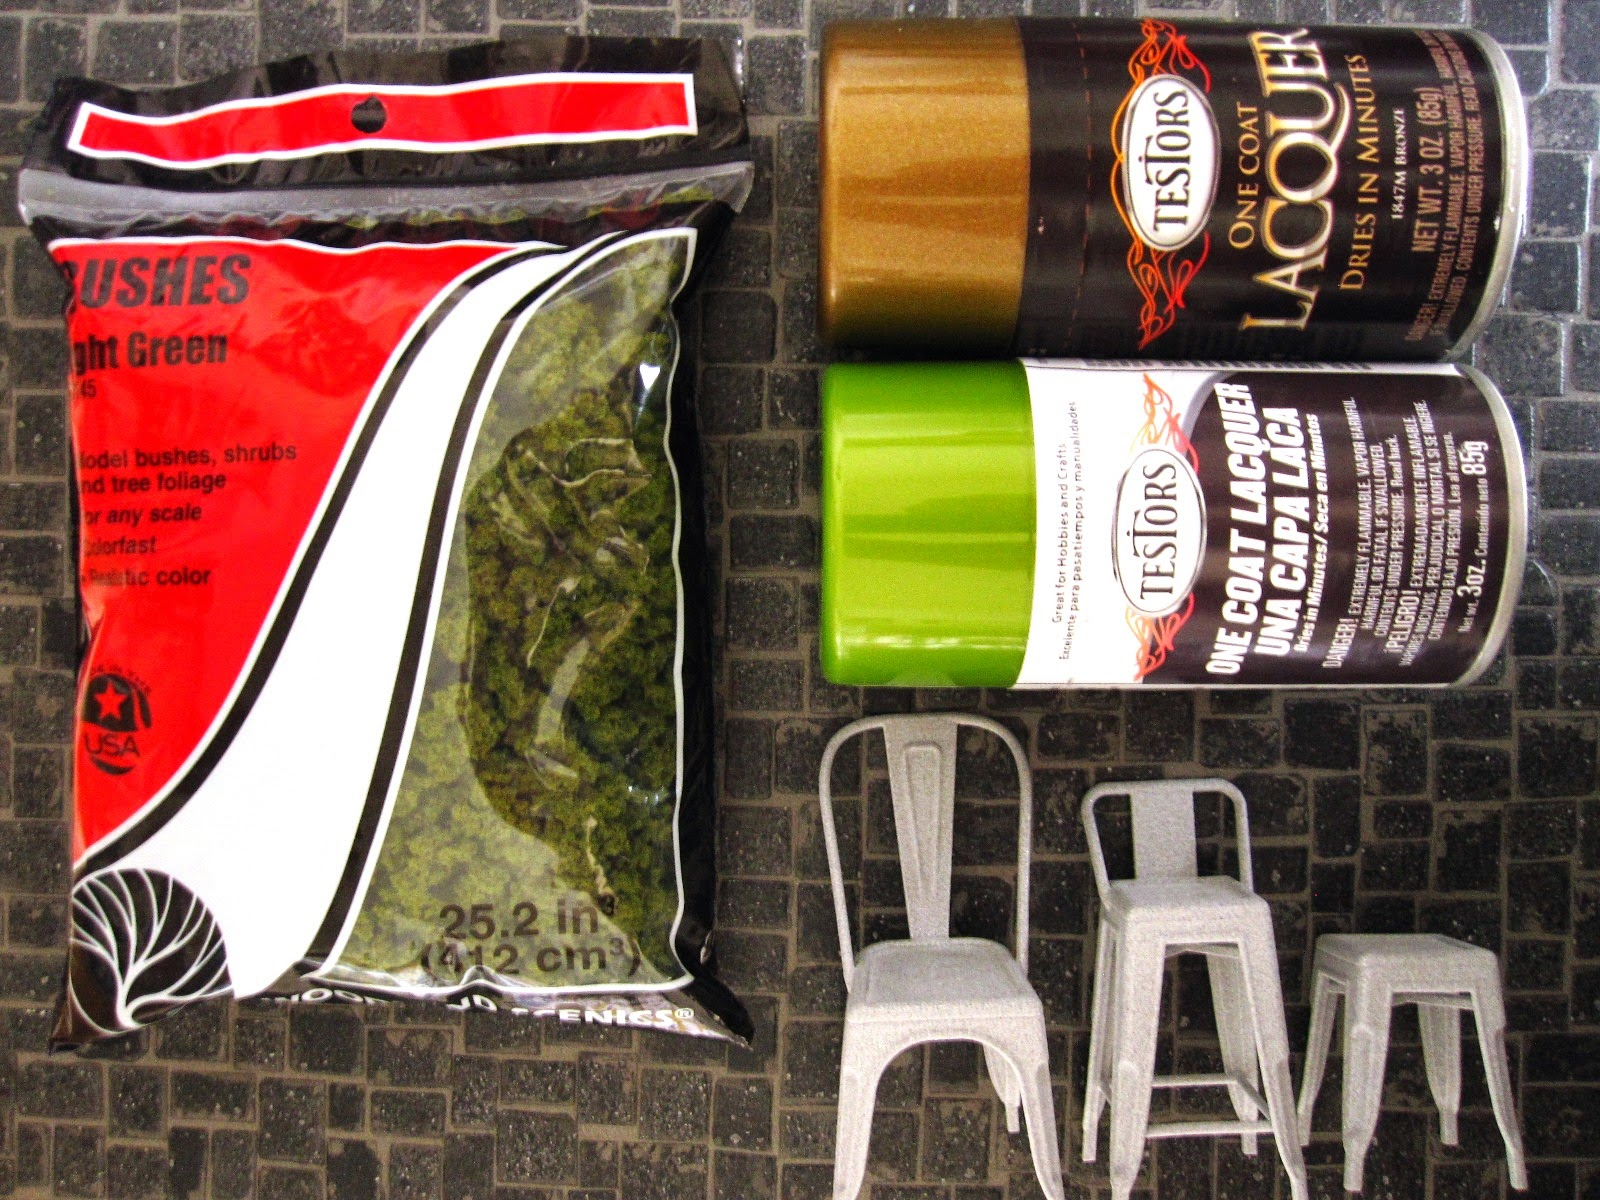 A bag of model railway bushes beside cans of copper and green metallic spray paint and three modern dolls' house miniature 3D printed cafe chairs.